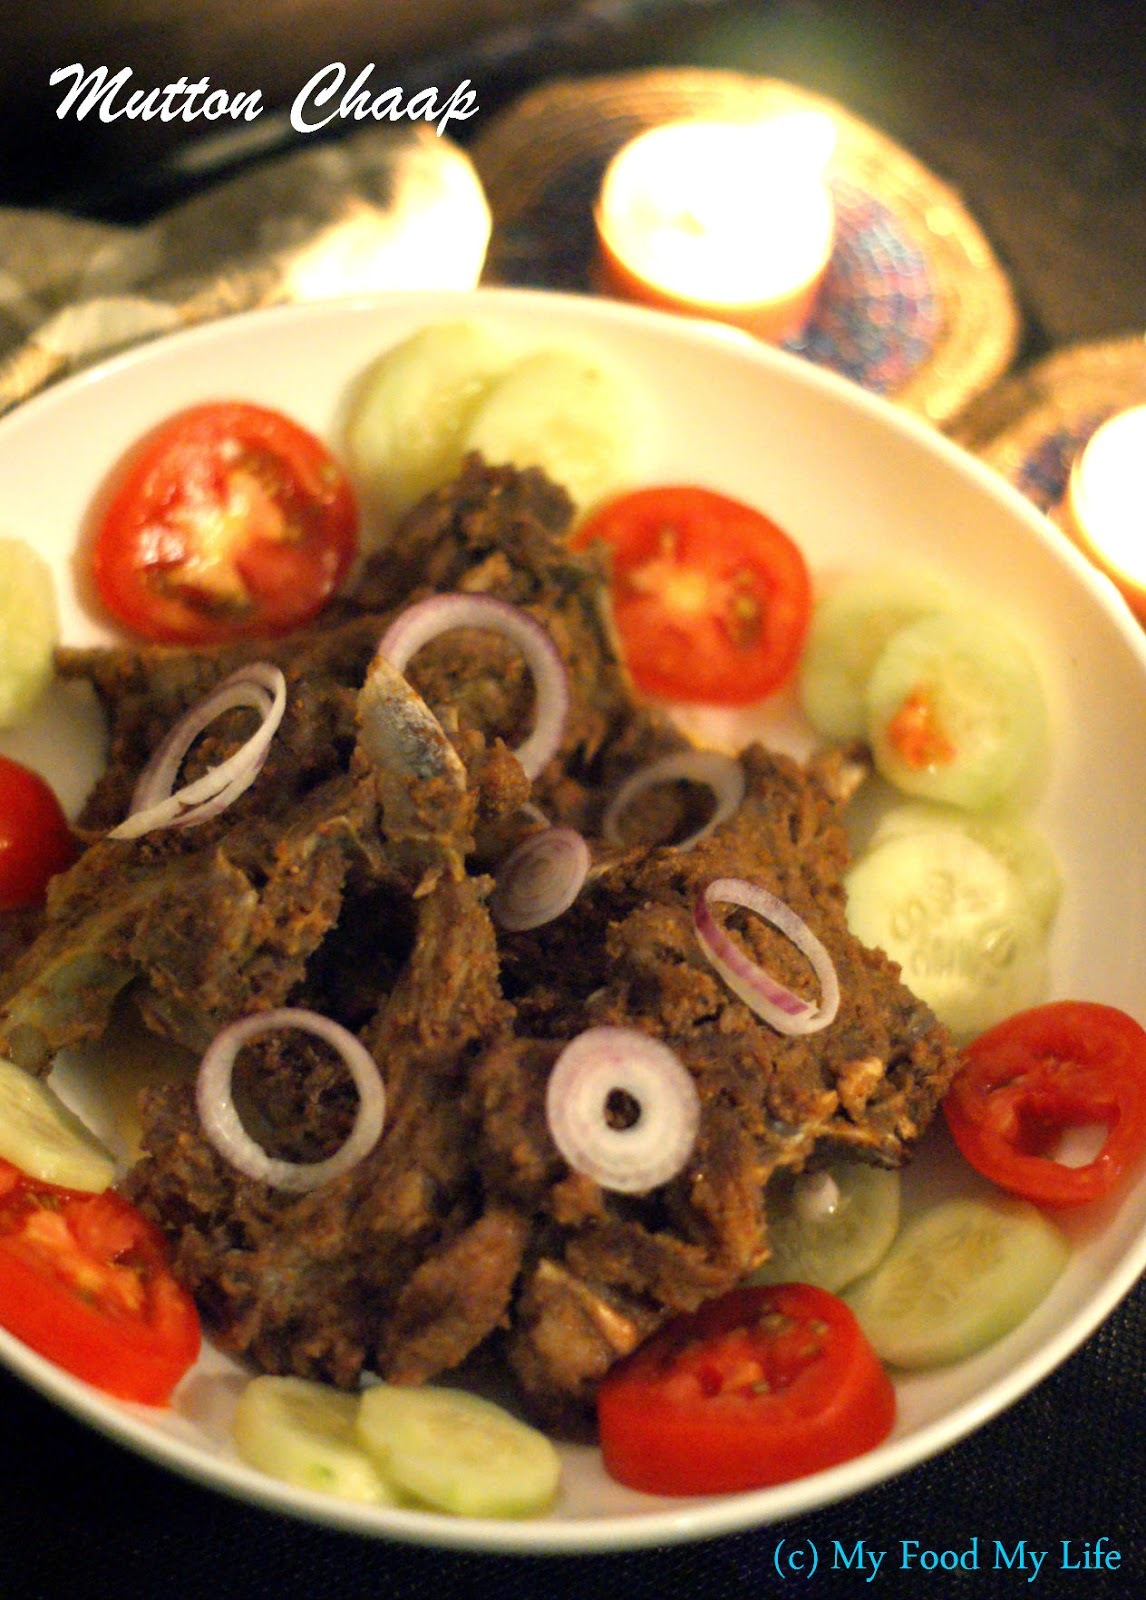 Mutton ChaaNp - Our Eid Special